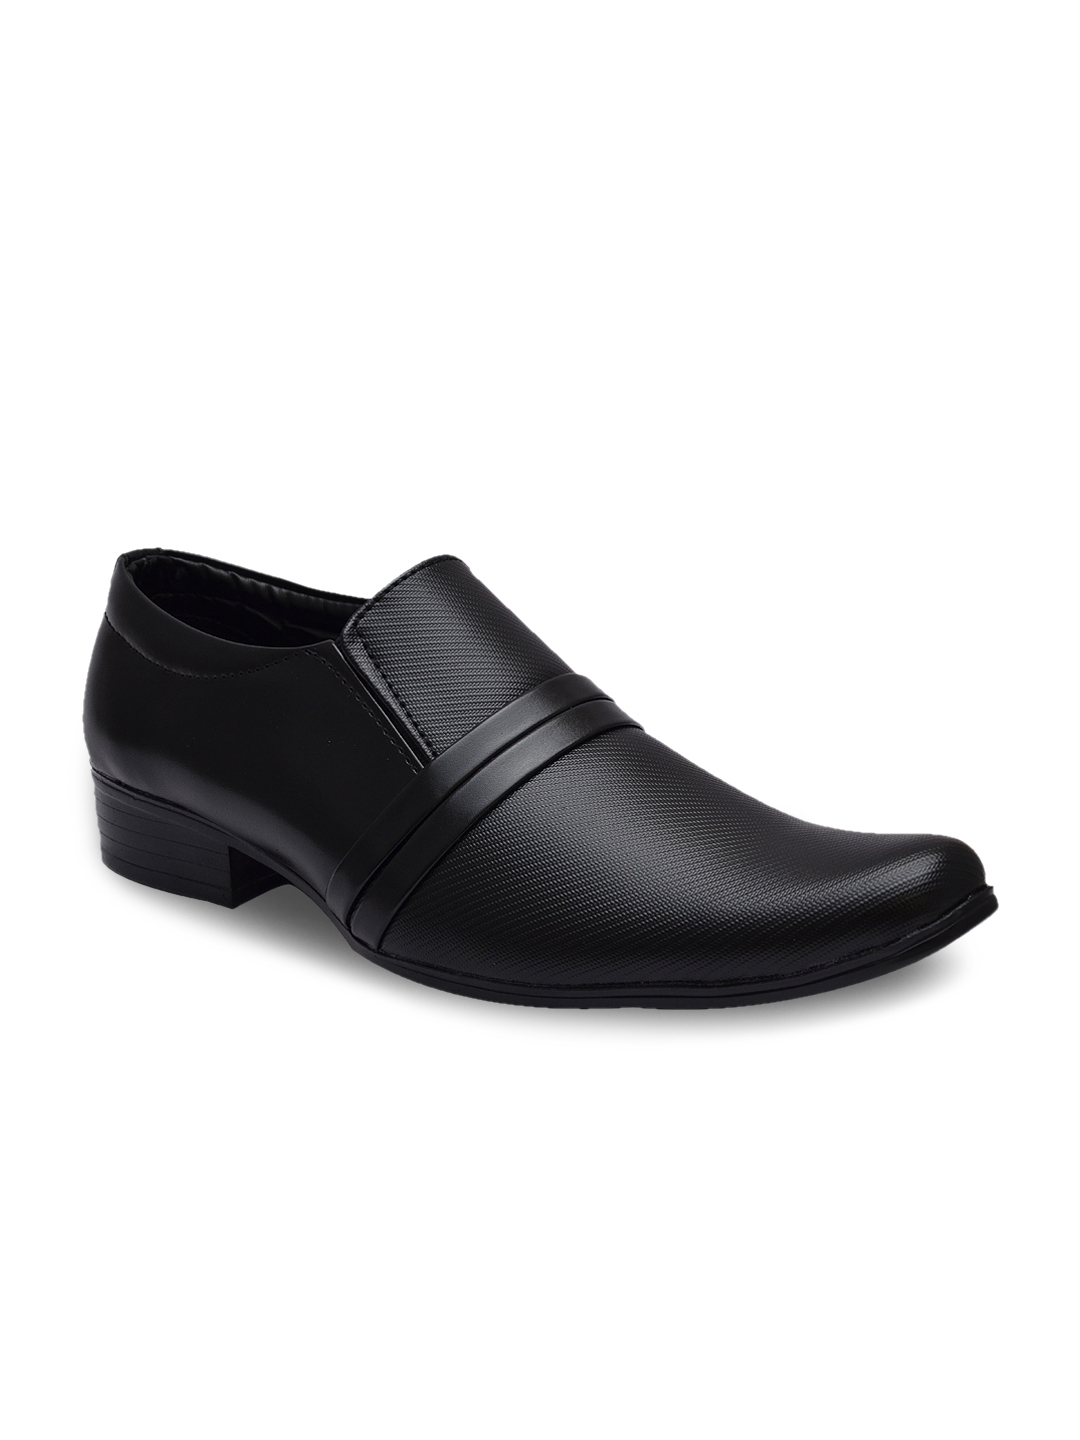 formal shoes for men - buy menu0027s formal shoes online | myntra niqrdzx